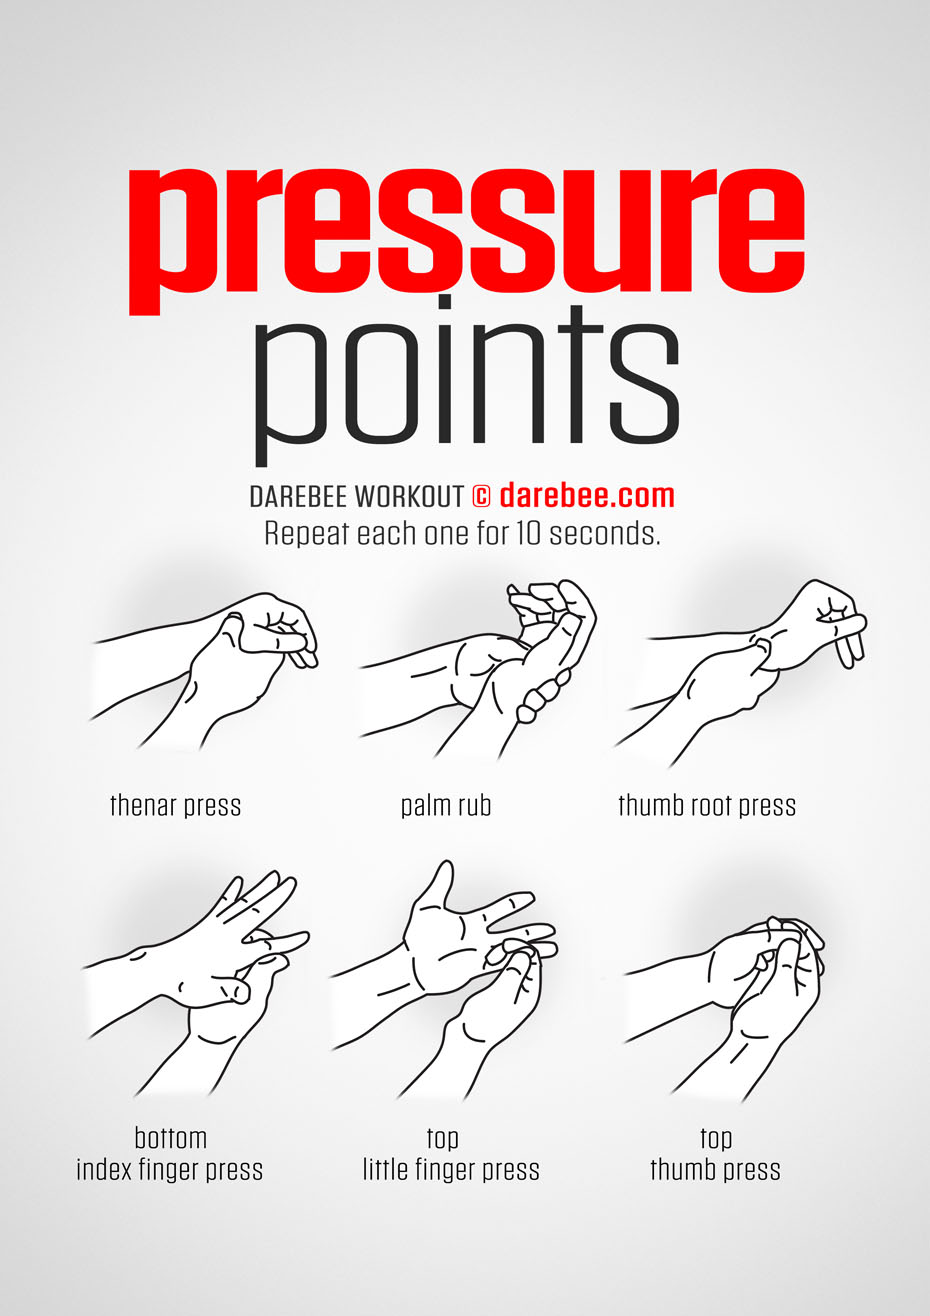 270 Best Images About Pressure Points On Pinterest Manual Guide